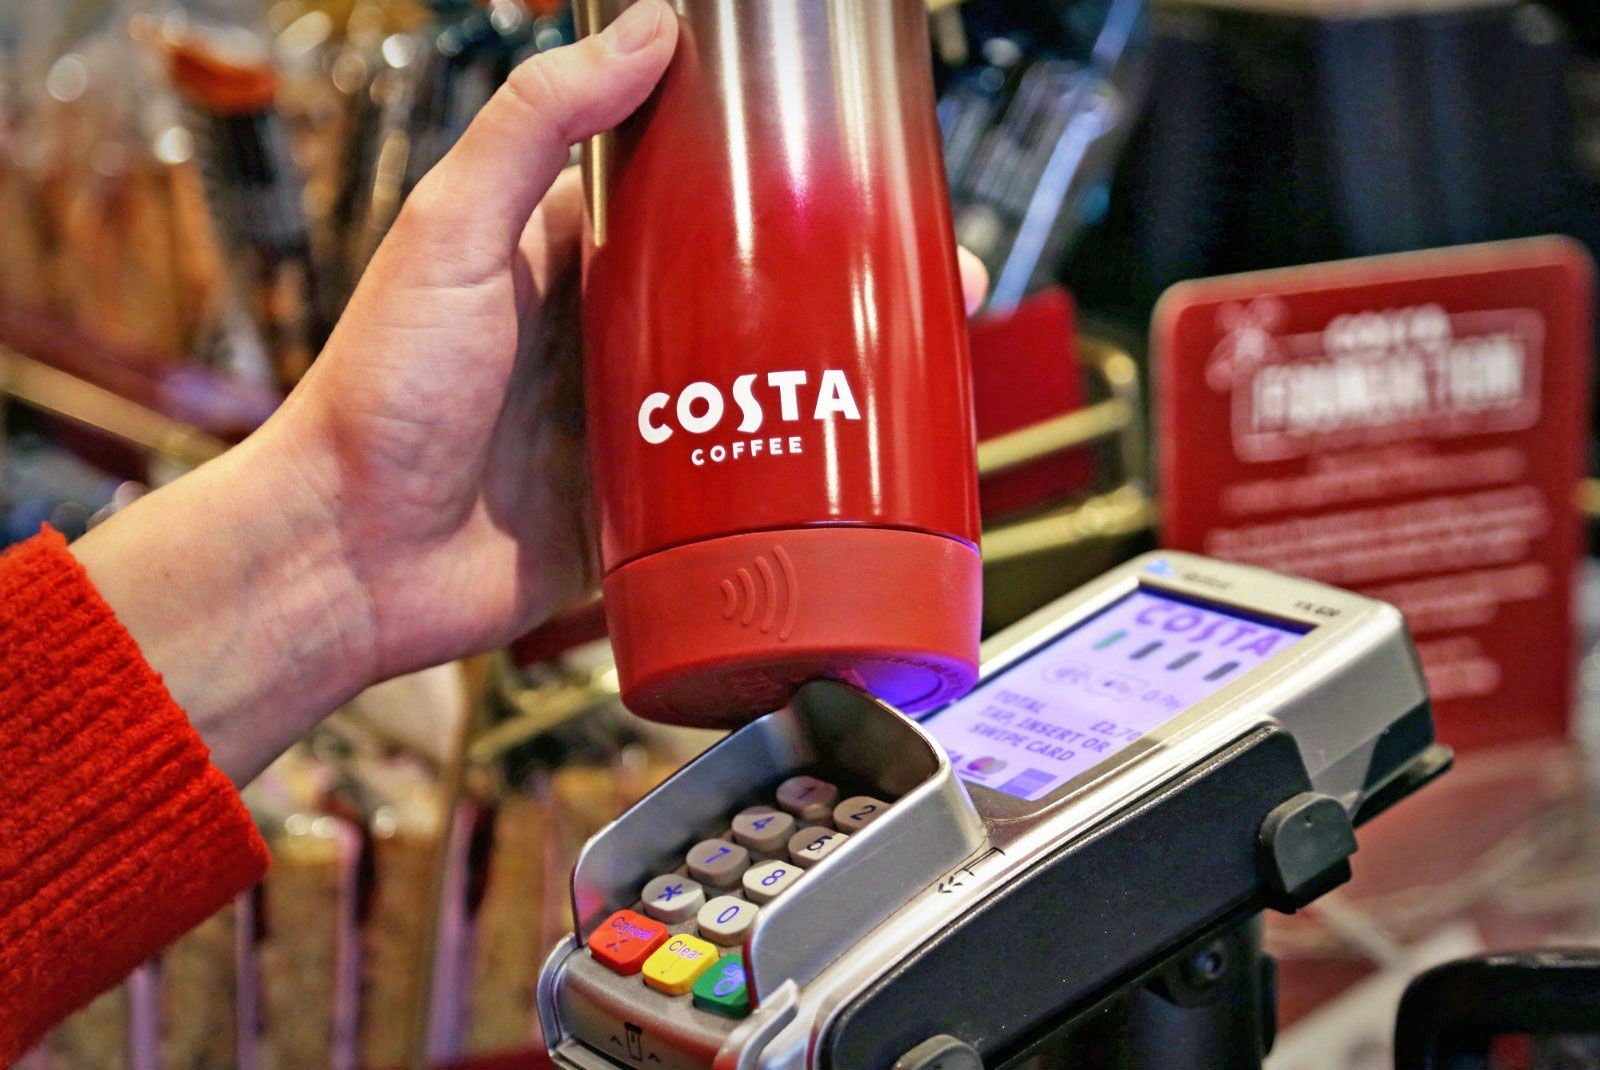 Reusable coffee cups with contactless chip (bPay) offers solution to save the planet